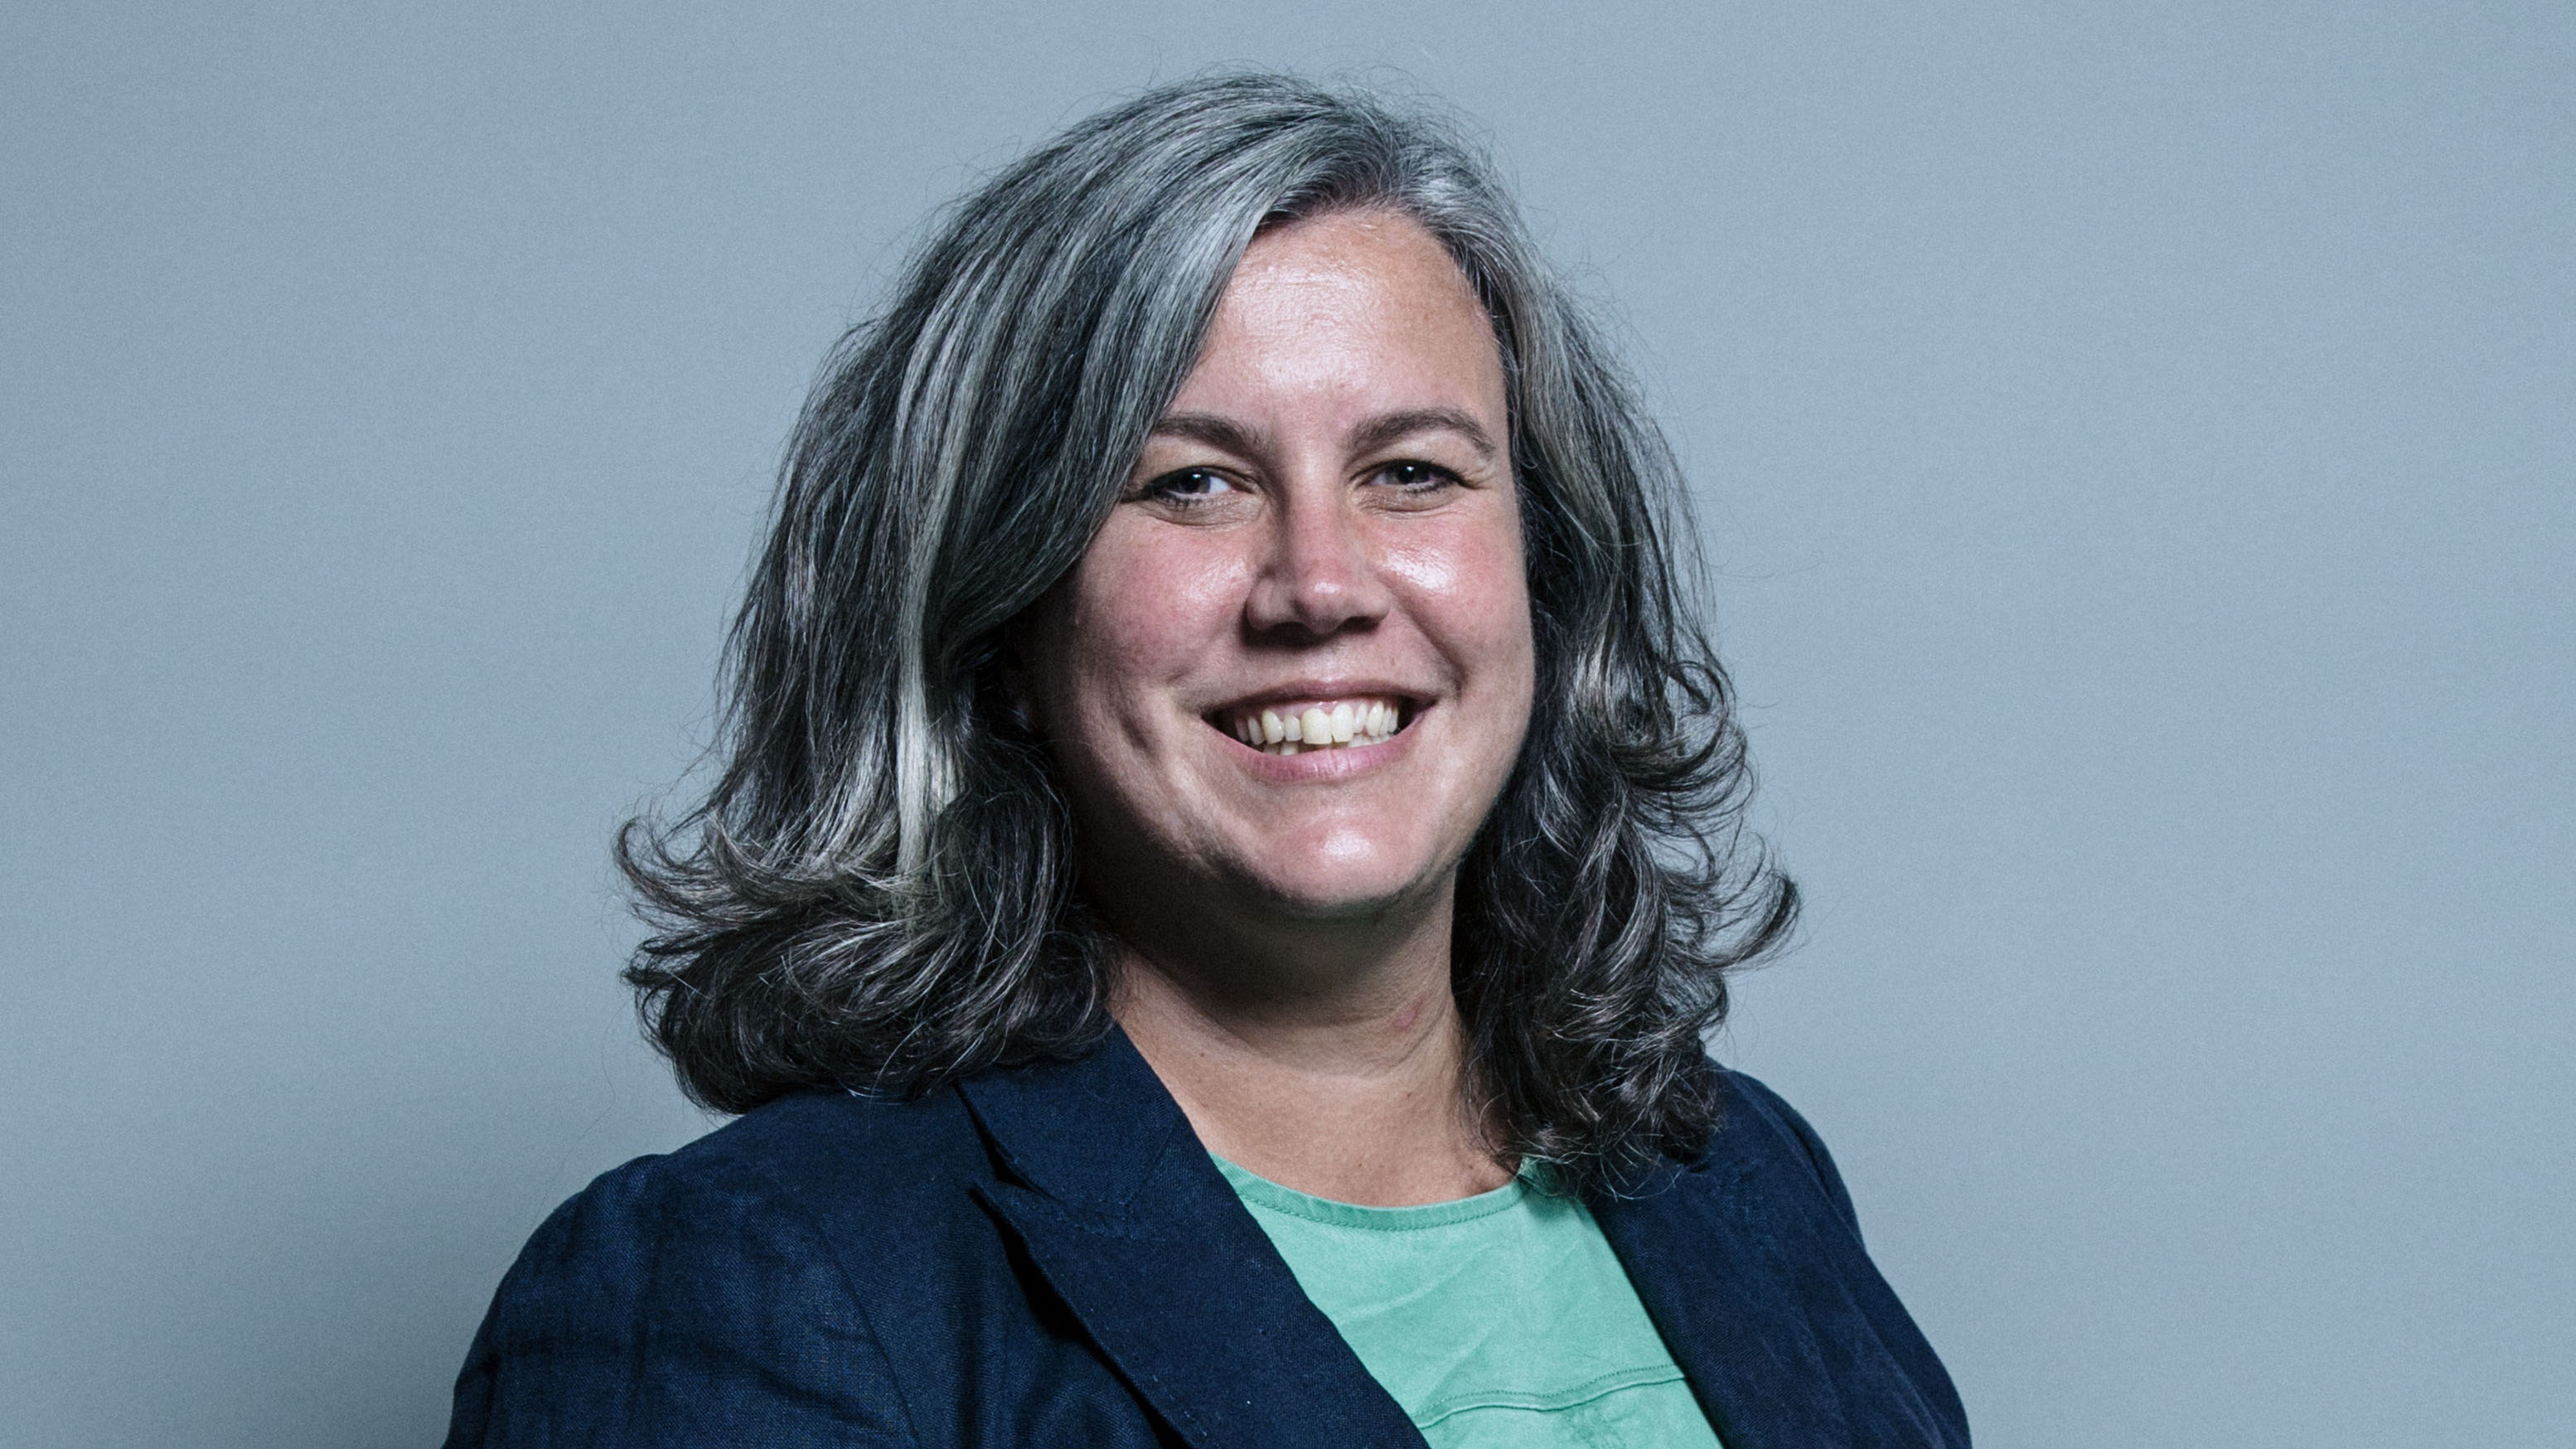 Lewisham MP Heidi Alexander to take the role of Deputy Mayor of London.